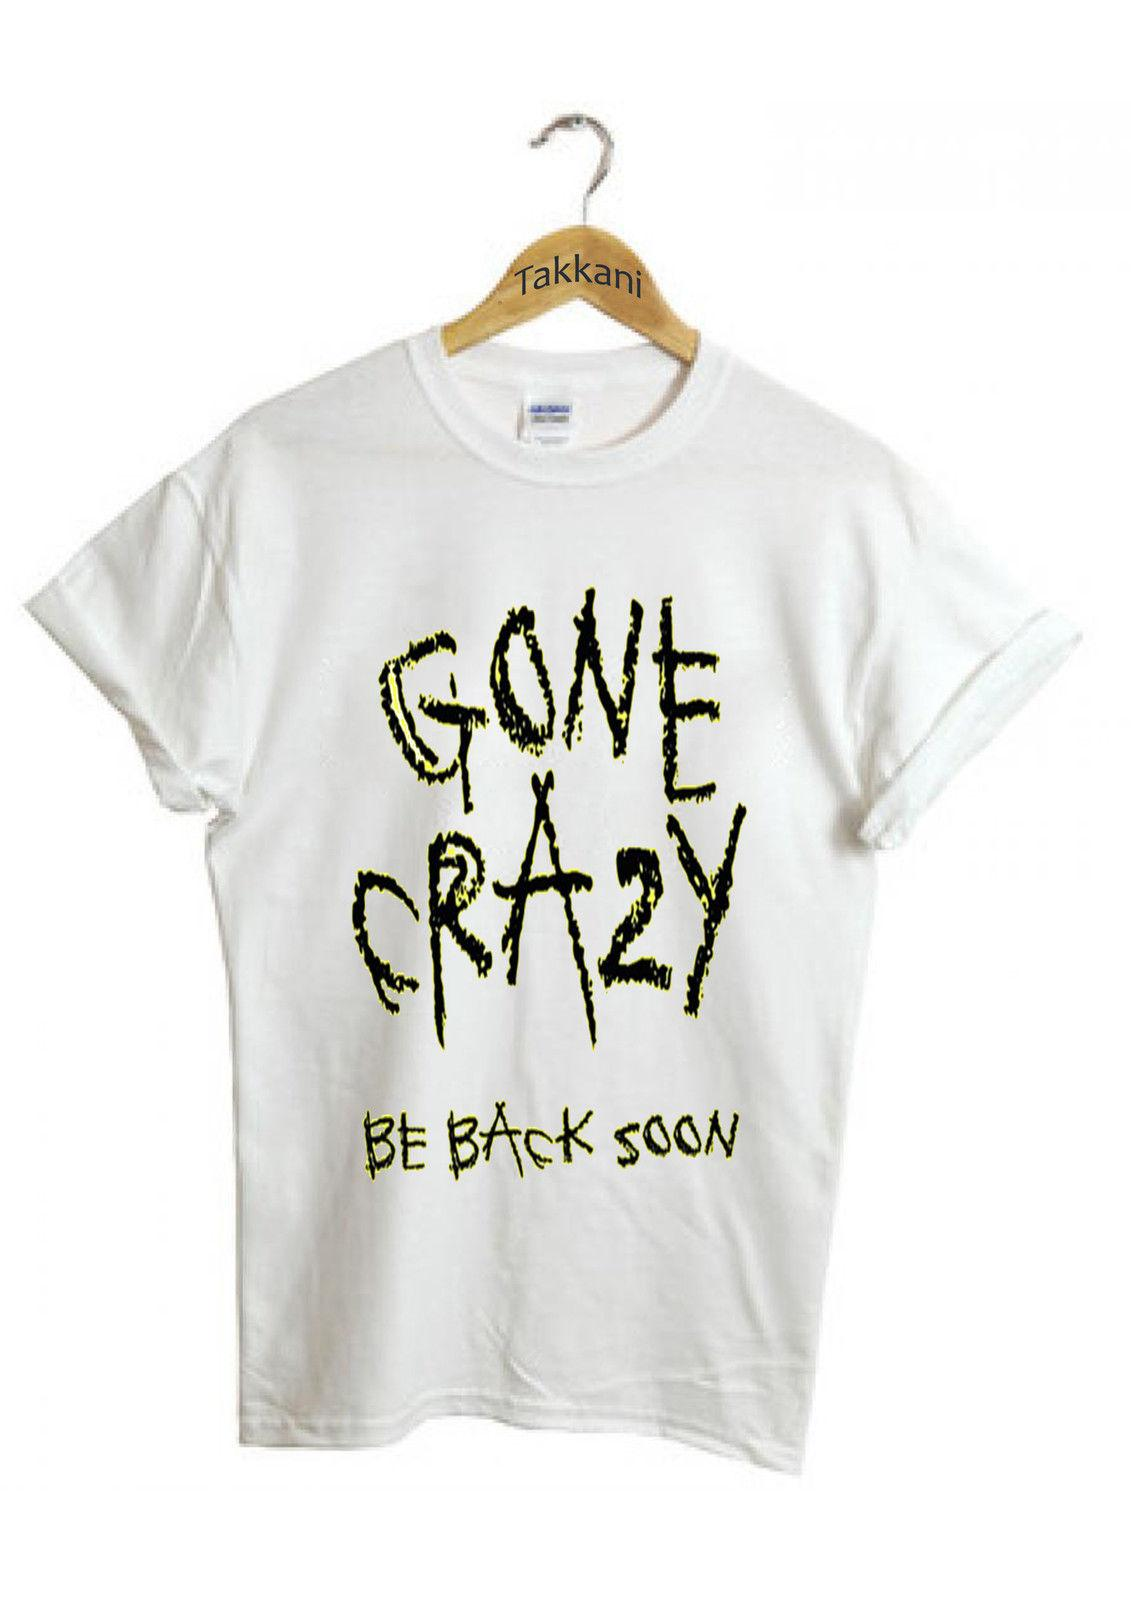 Gone Crazy Funny Birthday Gift Casual Unisex Men Women White Top T Shirt 227 Newest TeesFashion Style Tee Movie Shirts From Yp004